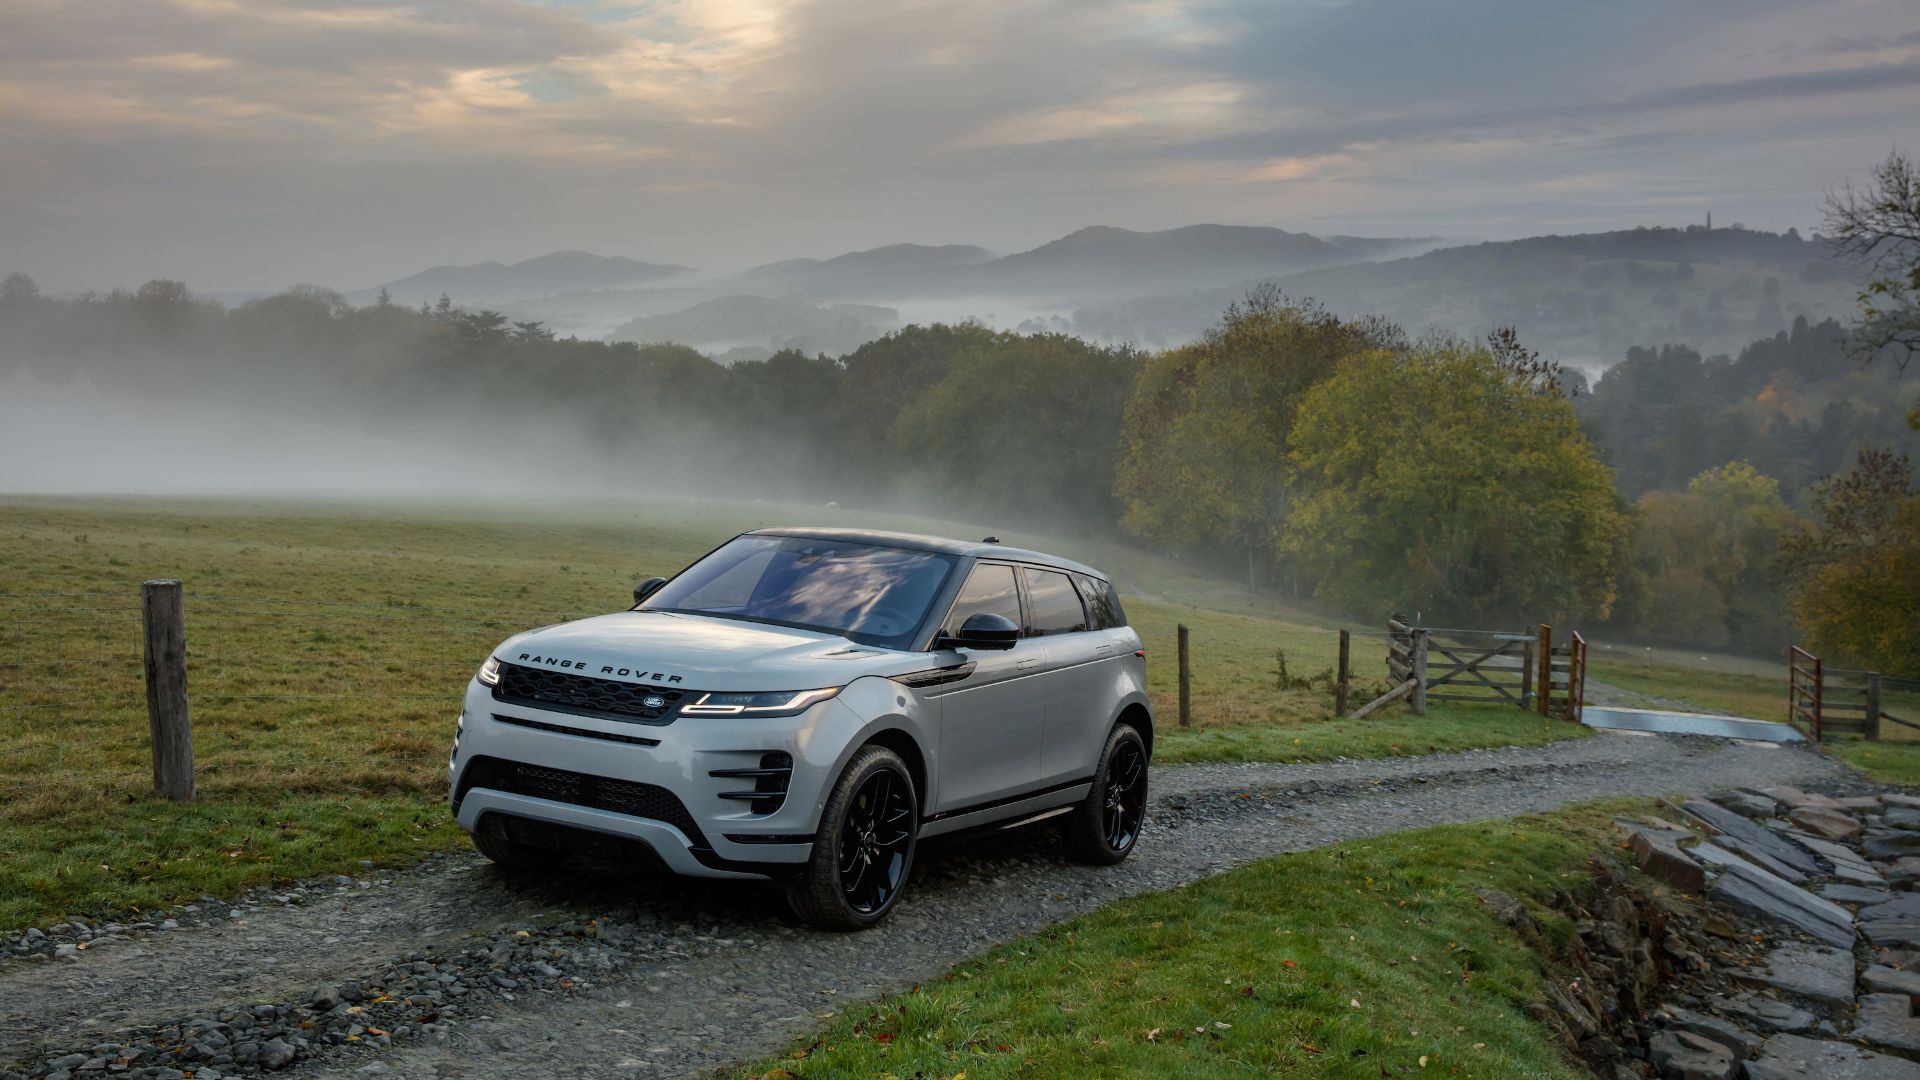 Range Rover Evoque high residual value